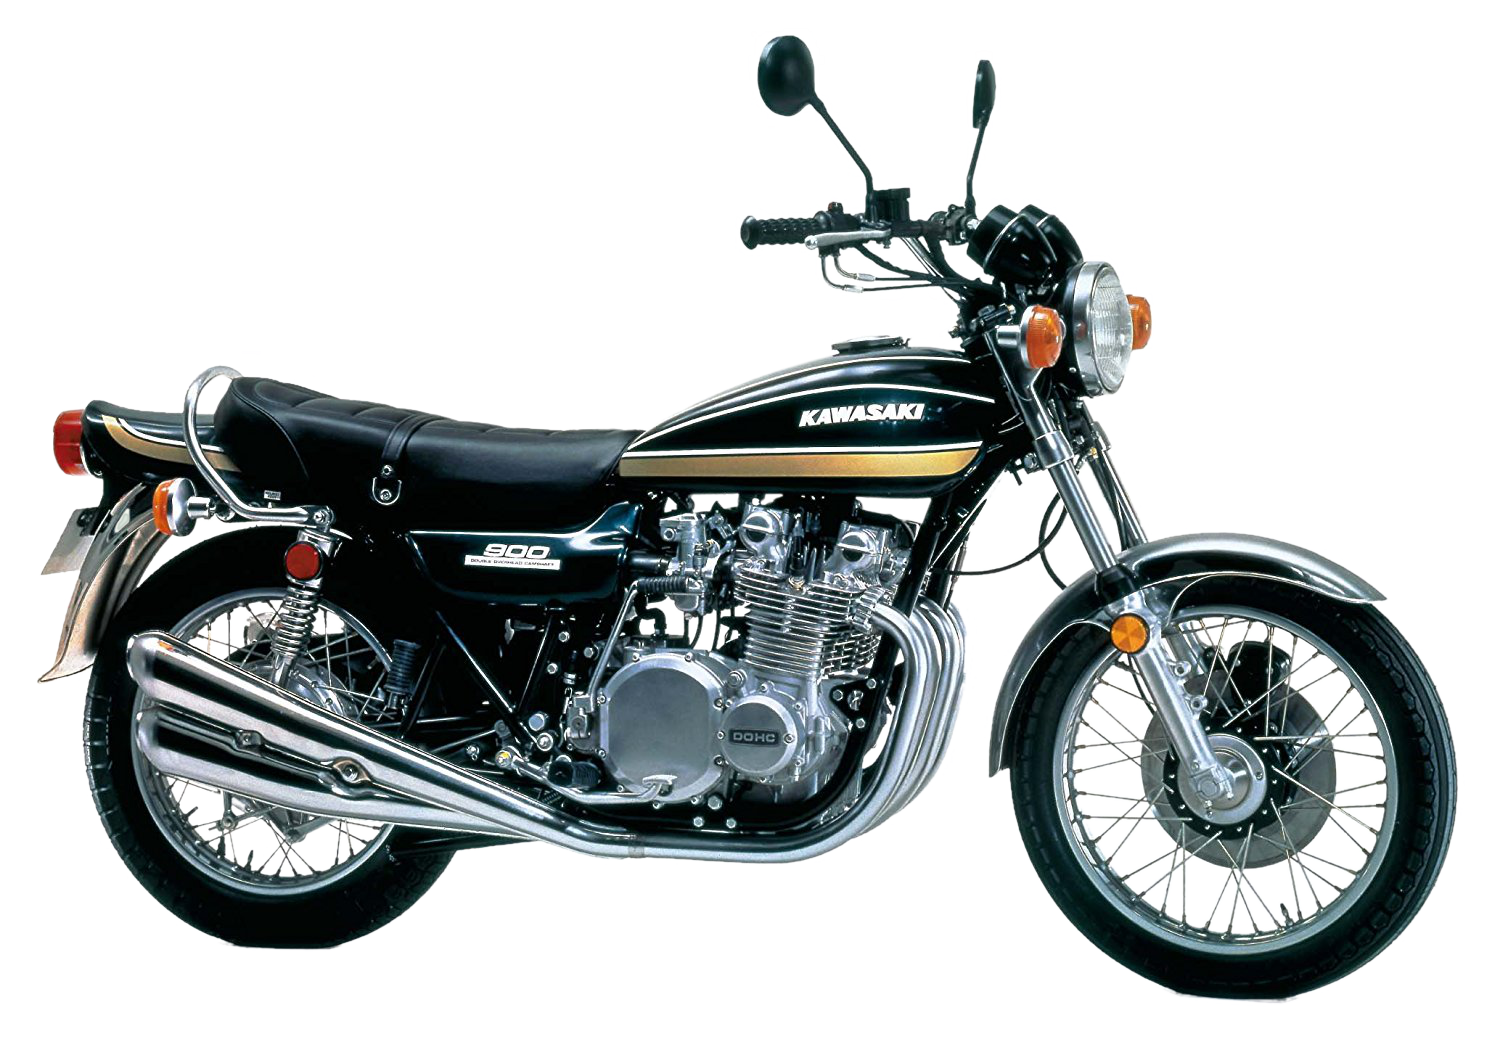 ride70s it 1975-kawasaki-z1-900 002